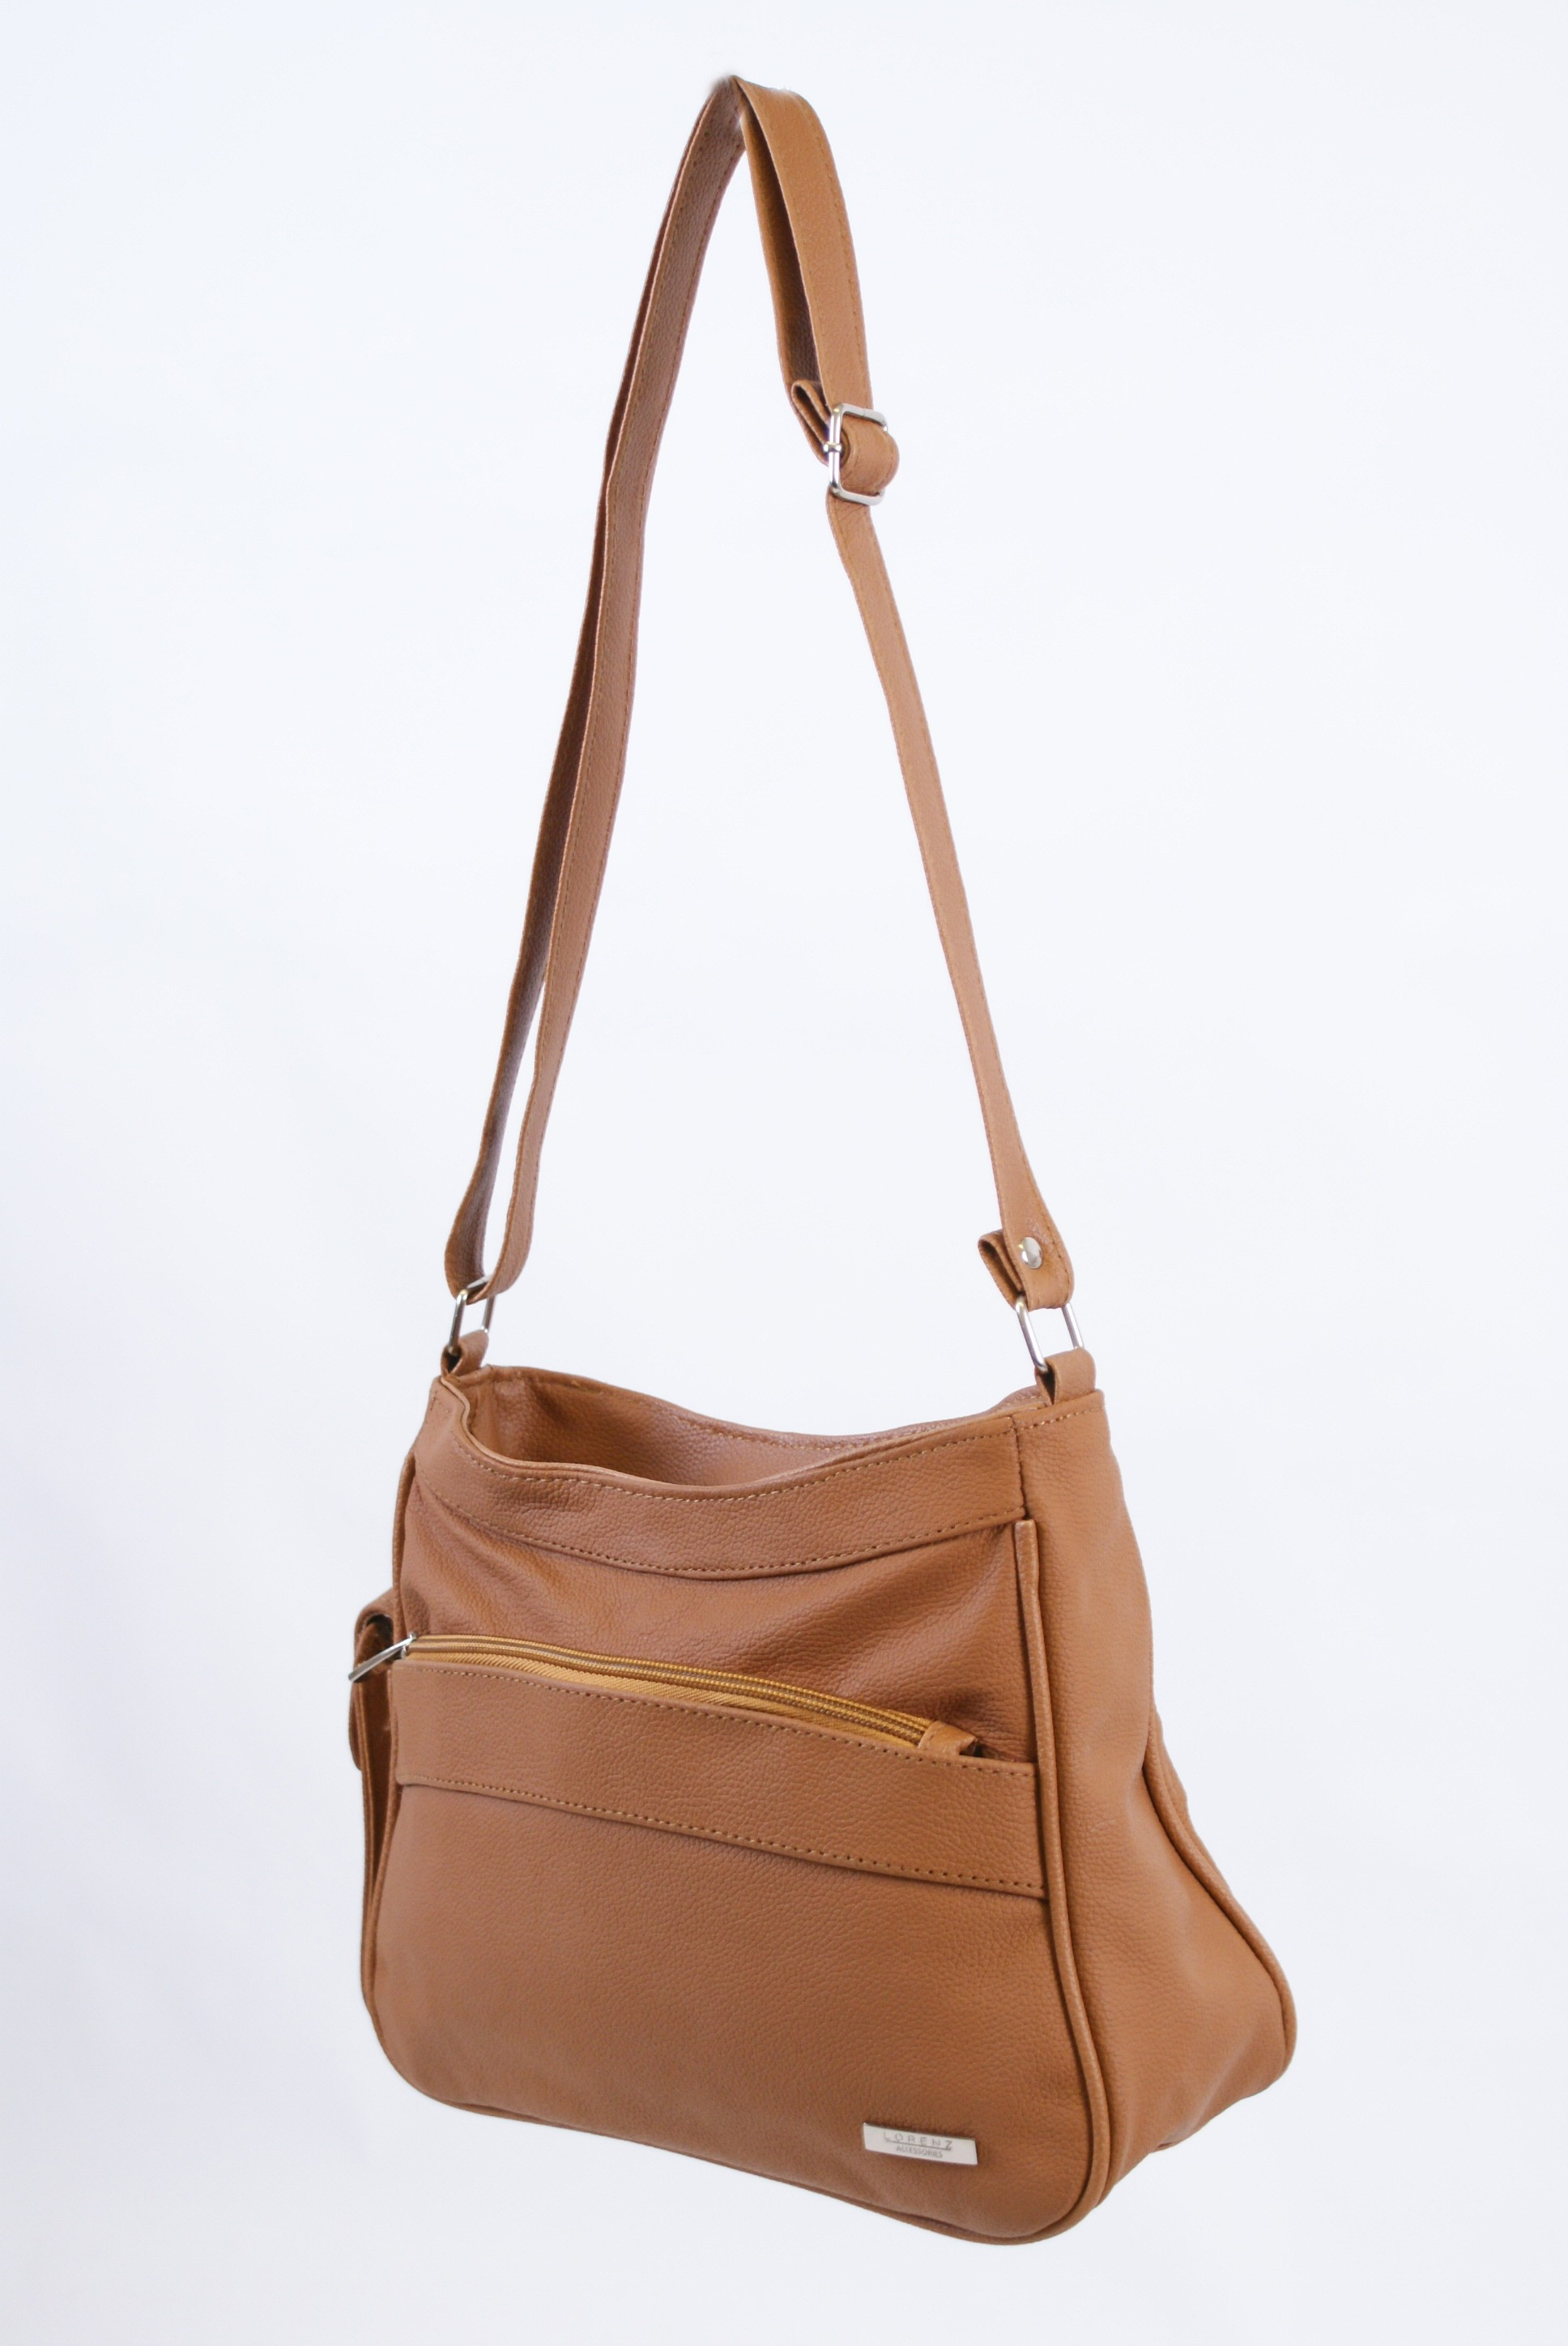 3743 TAN COW HIDE  BAG